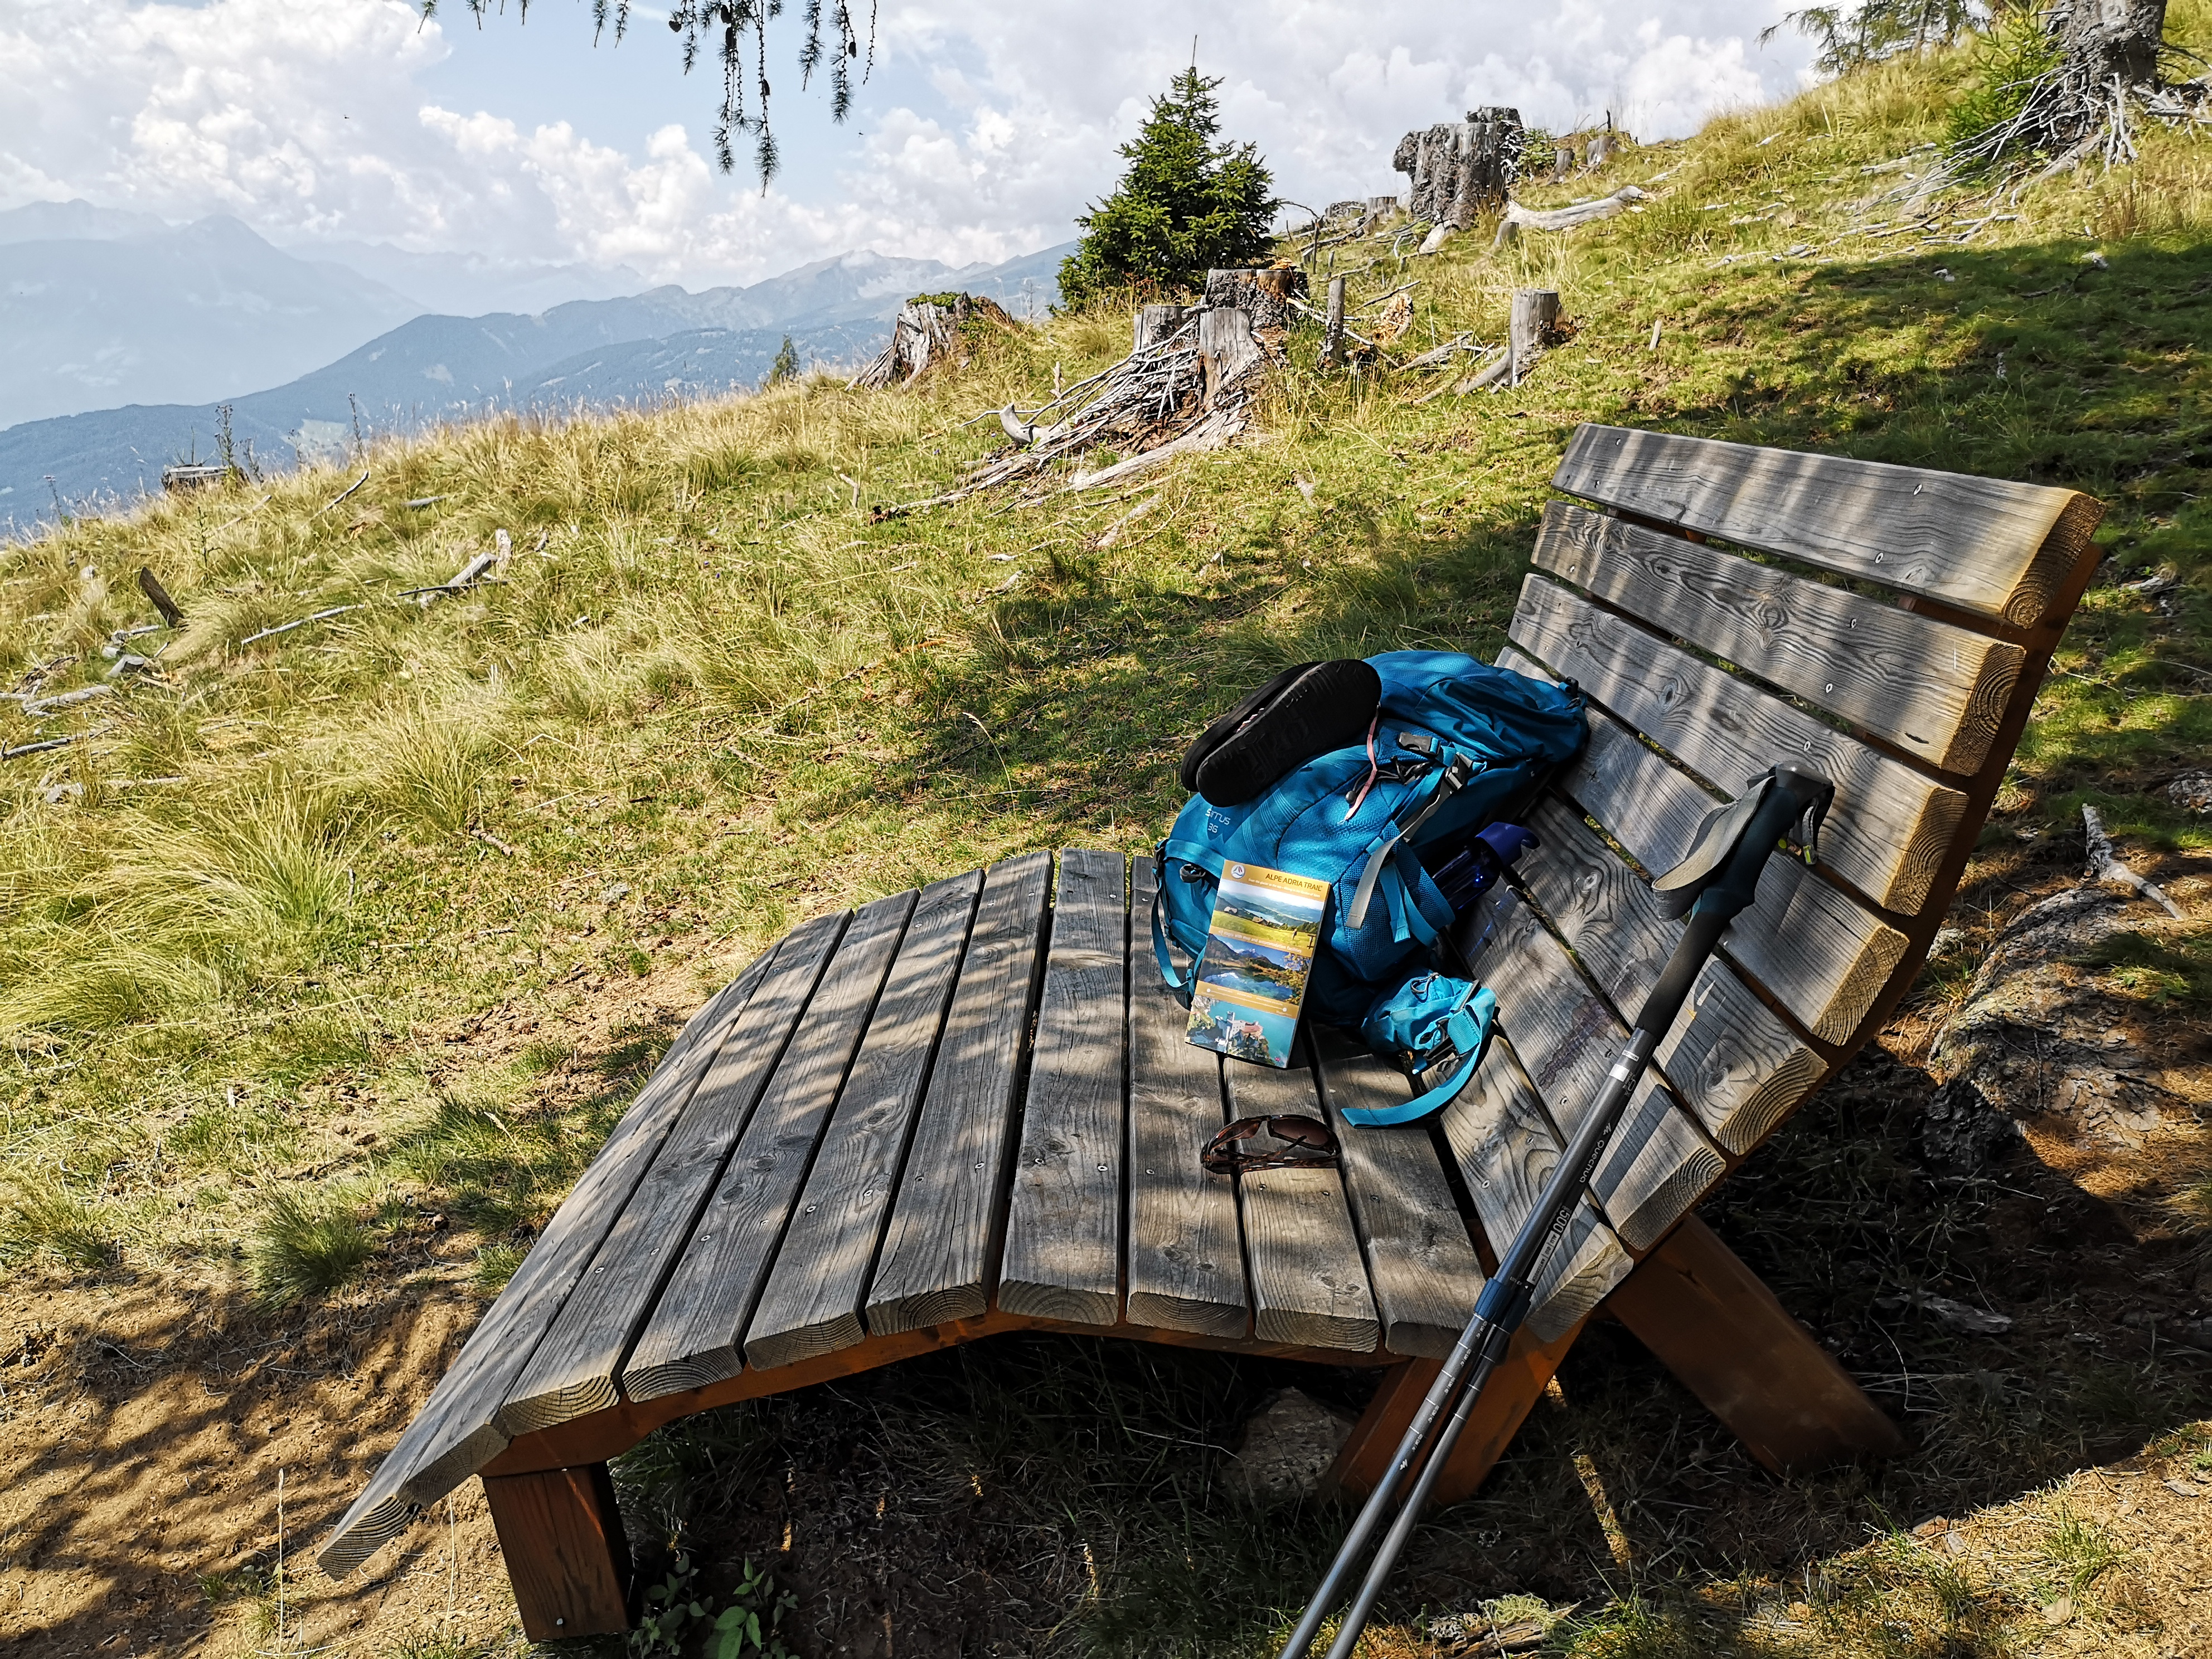 Hiking in Austria on the Alpe Adria Trail - Stage 12